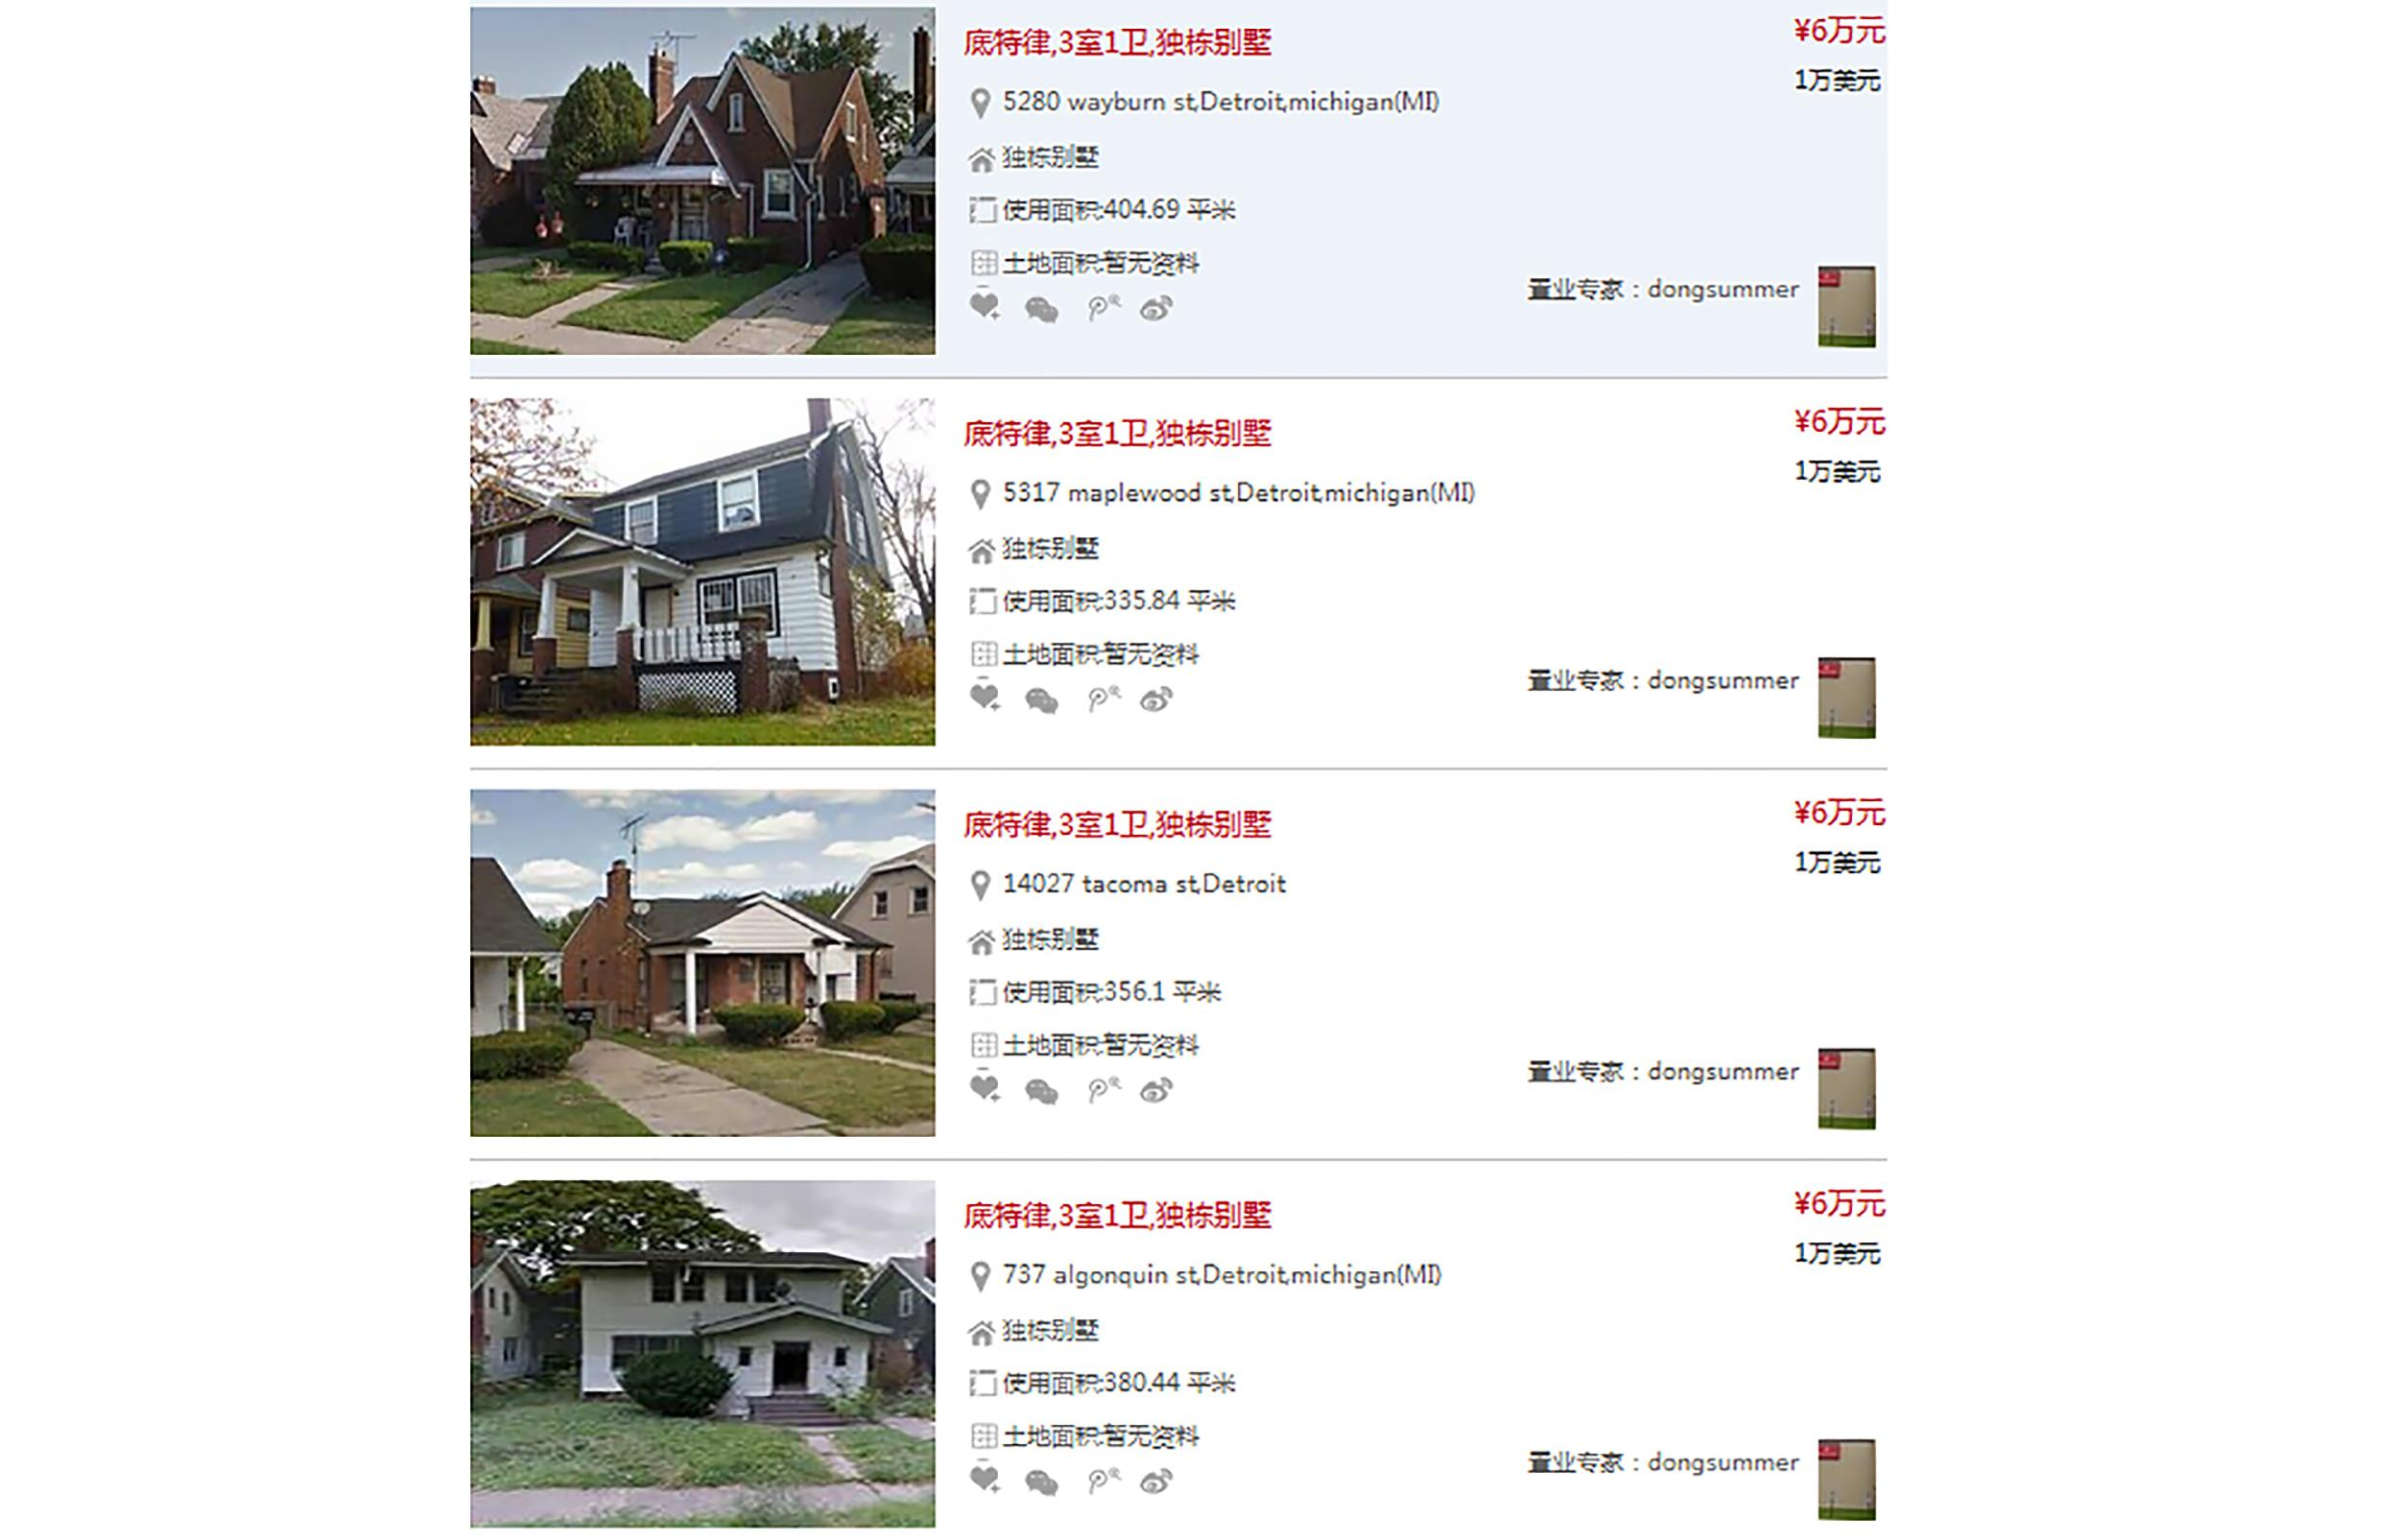 Detroit homes for sale on the SouFun website with a $10,000 price tag.